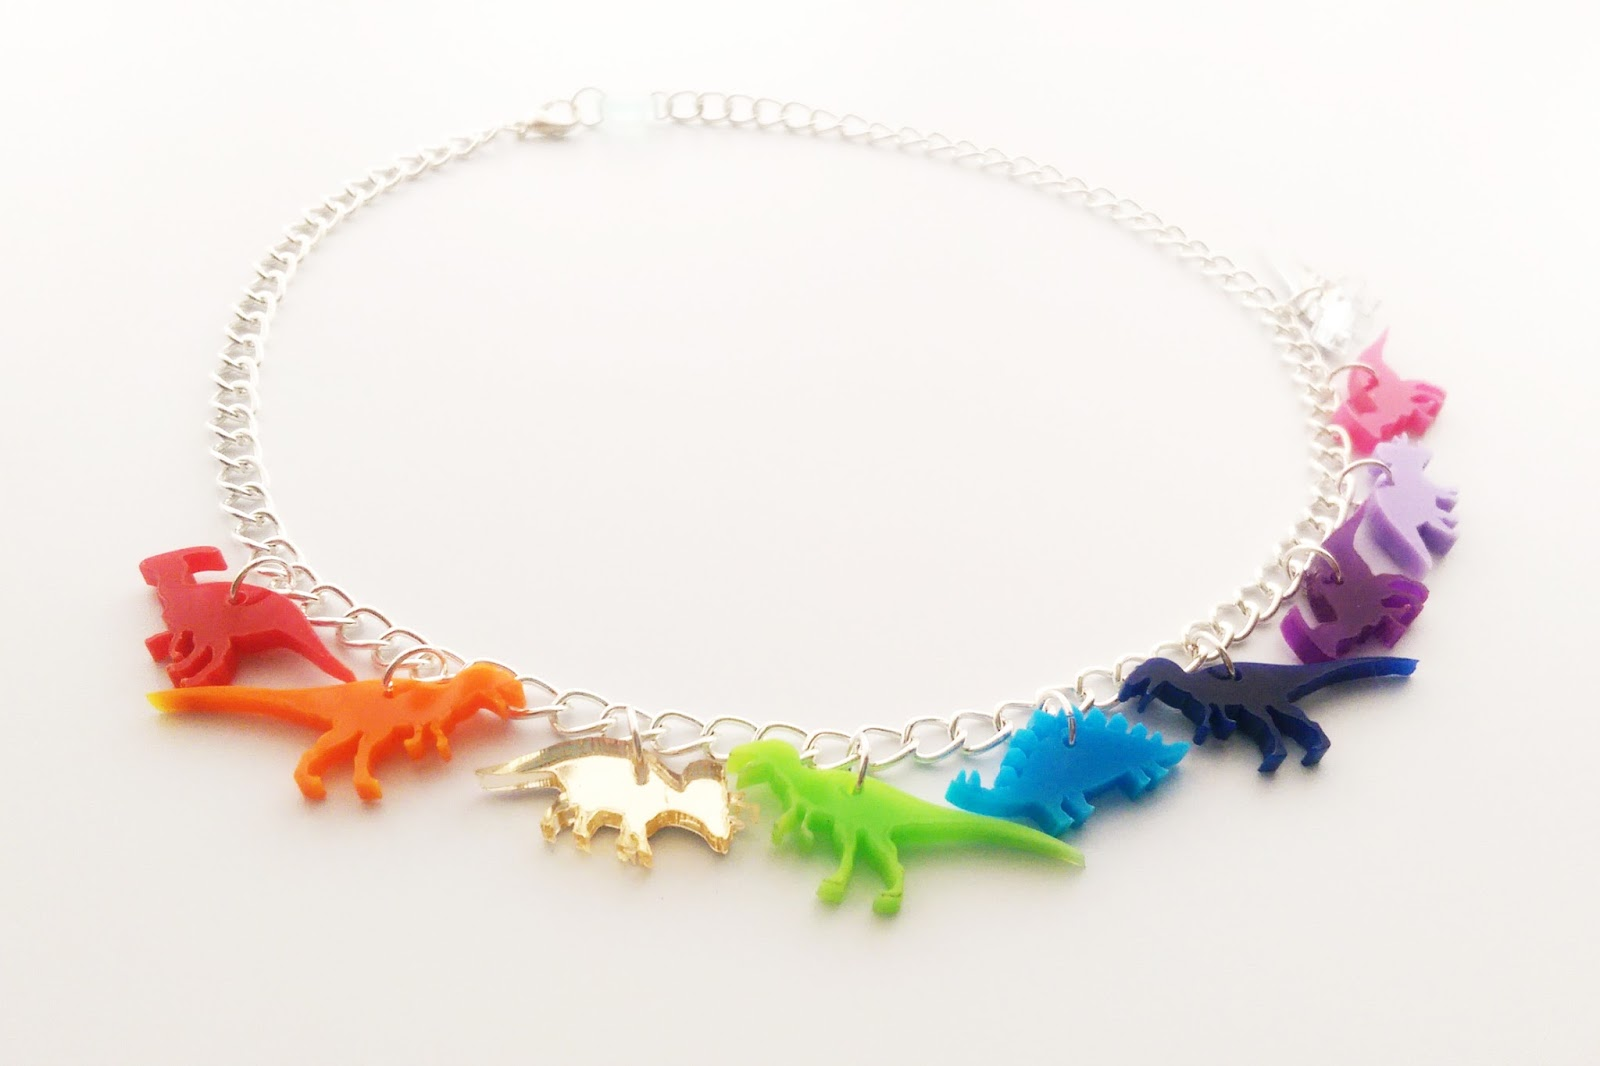 Dinosaur charm necklace